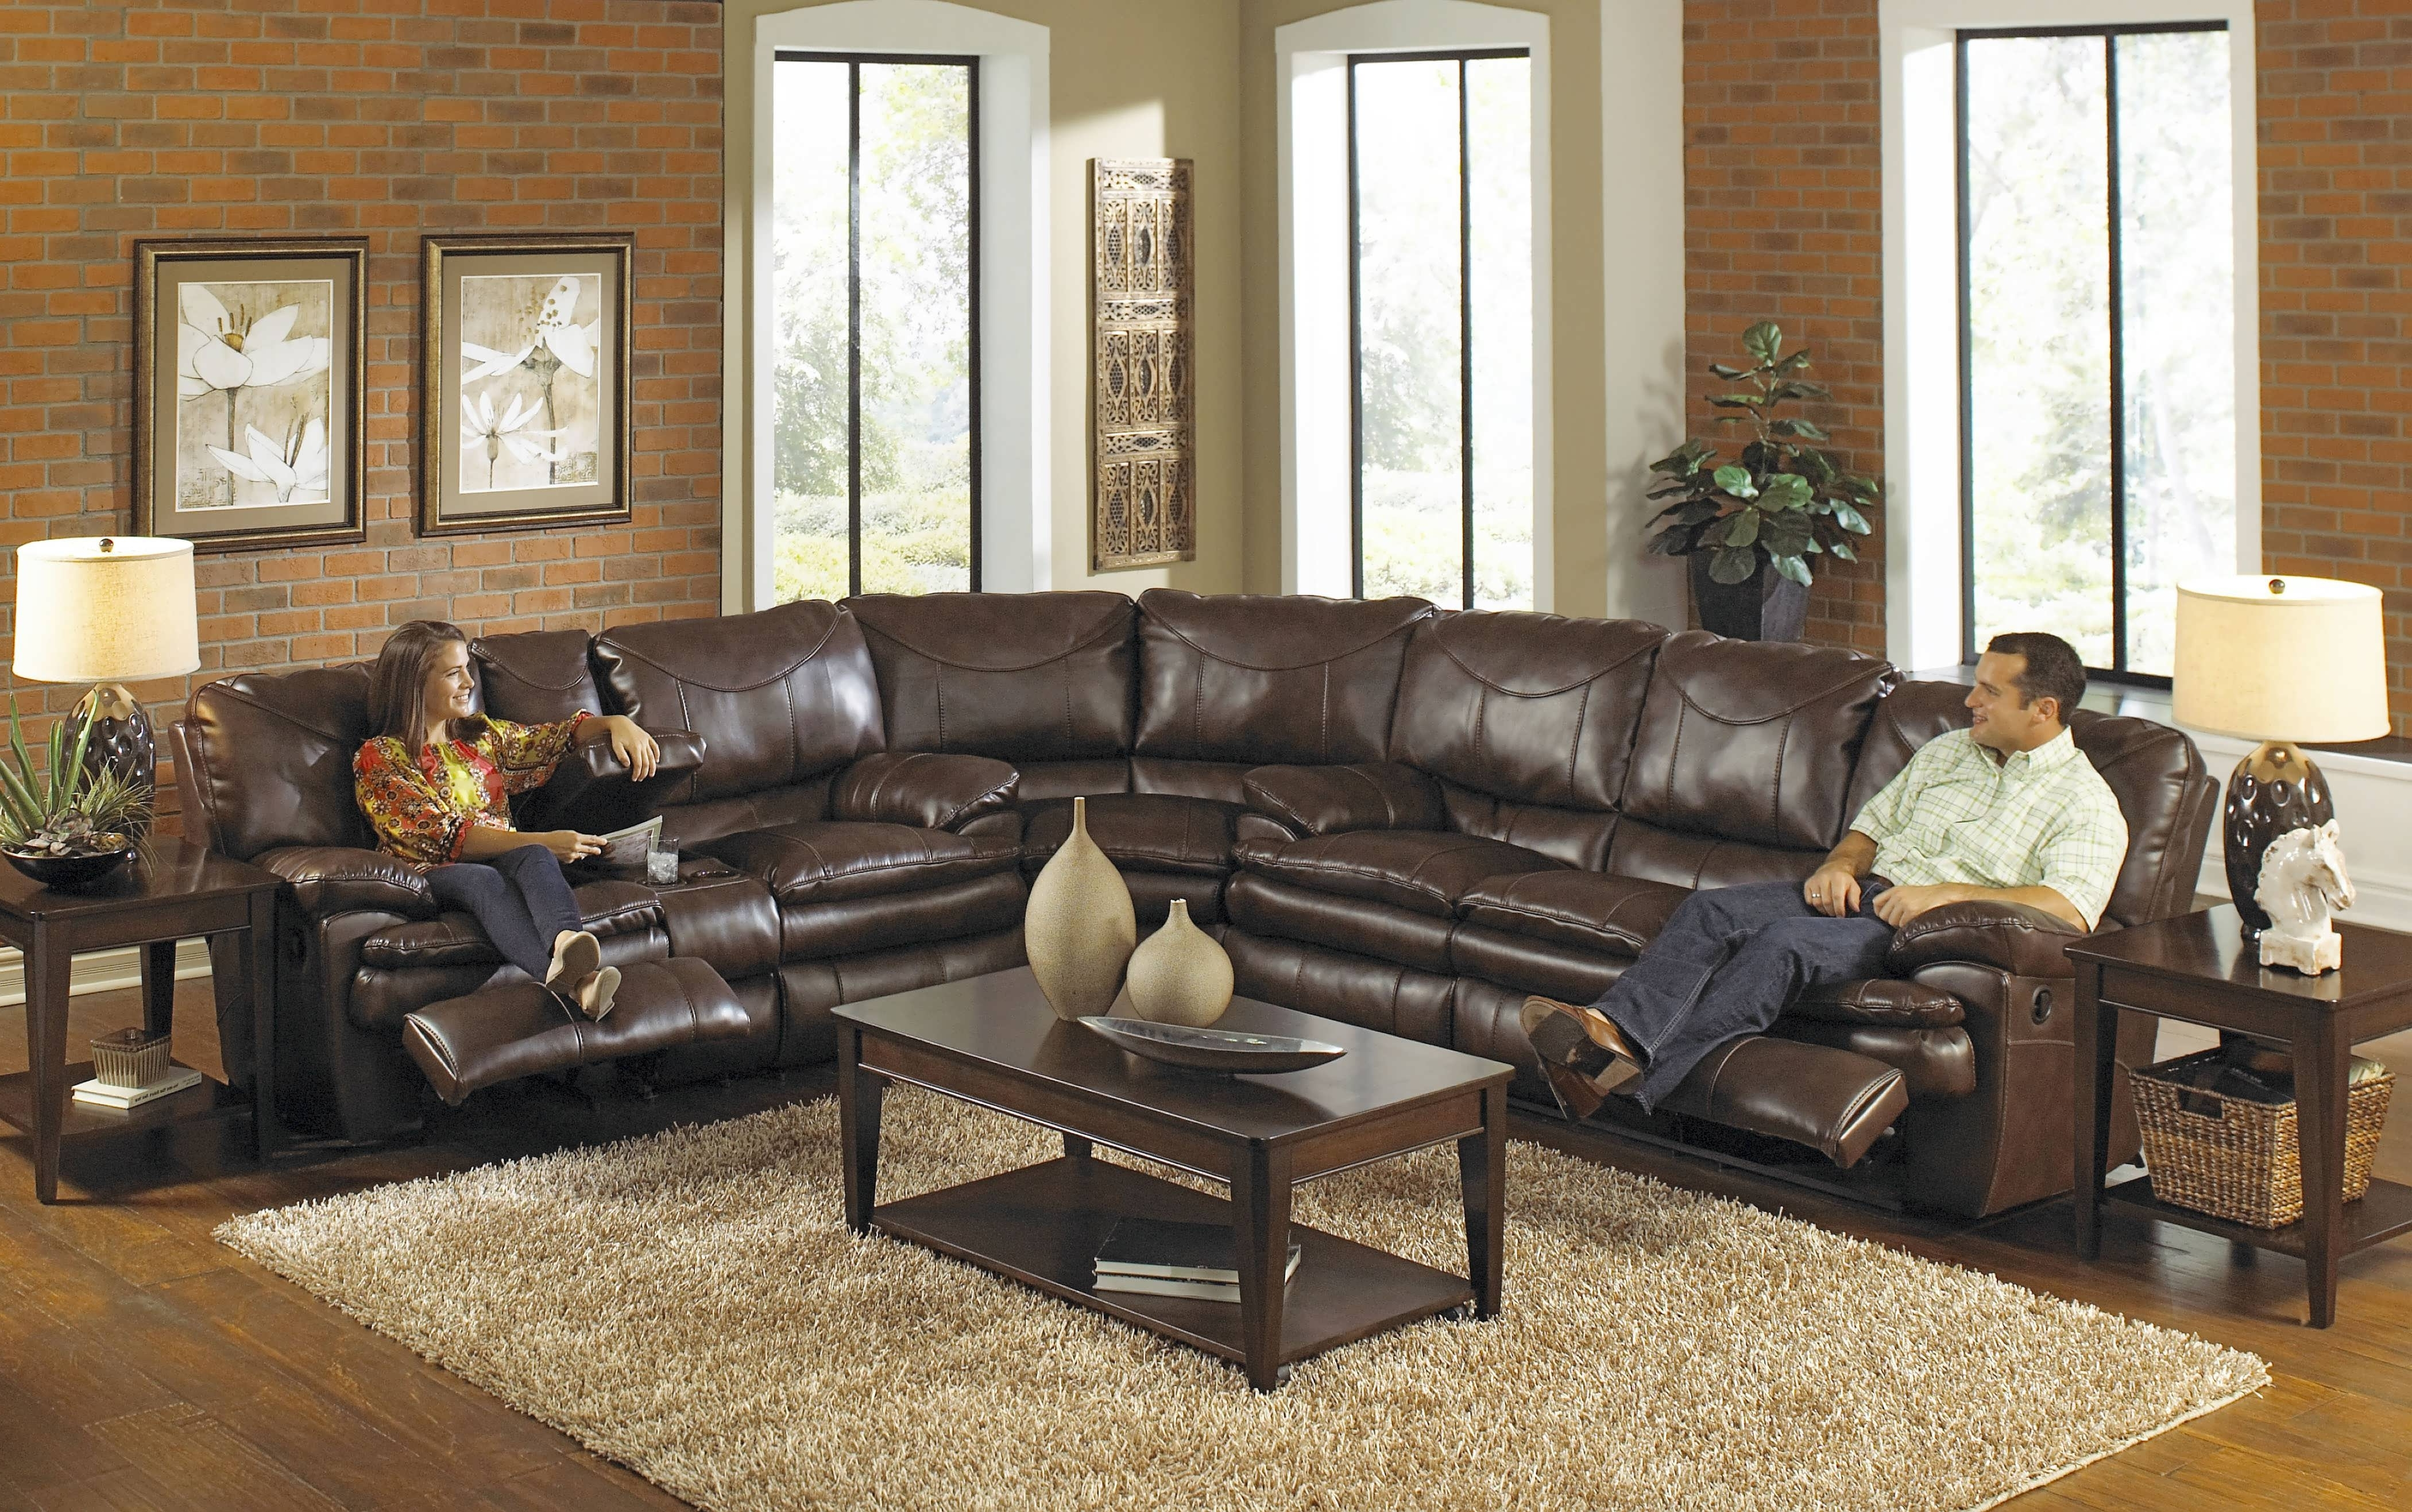 Popular Reclining Sectional Sofas Intended For Big Lots Furniture Reviews Reclining Sectional Sofas For Small (View 10 of 15)